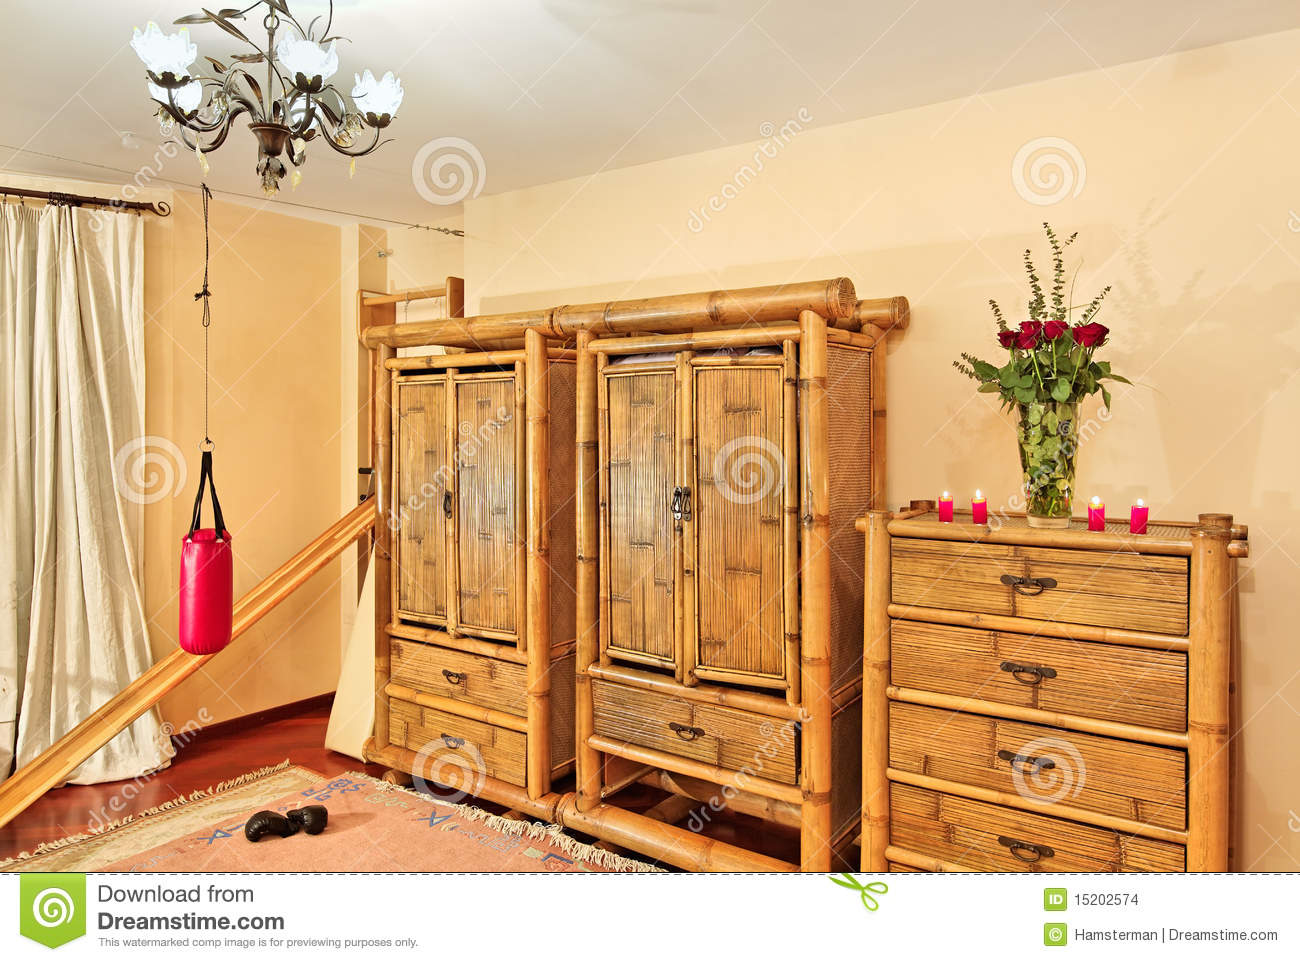 meubles en bambou ethniques photo stock image du rouge. Black Bedroom Furniture Sets. Home Design Ideas